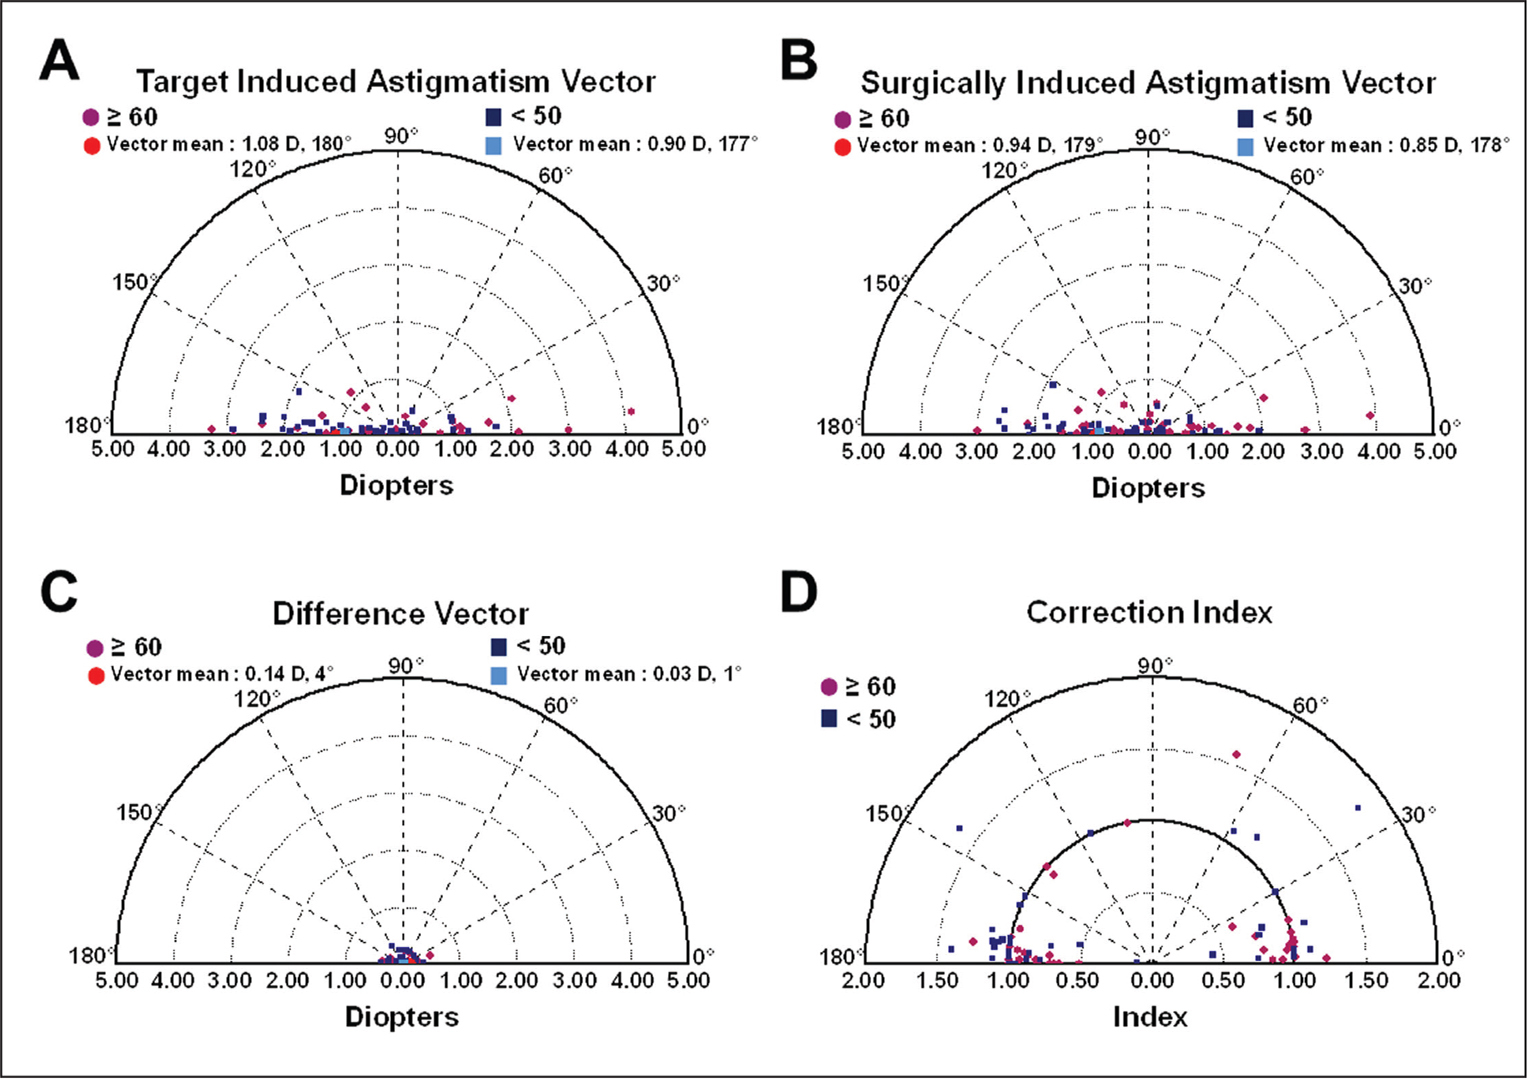 Single-angle polar plots of (A) target induced astigmatism vector, (B) surgically induced astigmatism vector, (C) difference vector, and (D) correction index at 6 months after transepithelial photorefractive keratectomy, according to epithelial thickness (ET) (≥ 60 = preoperative ET ≥ 60 μm; < 50 = preoperative ET < 50 μm). D = diopters